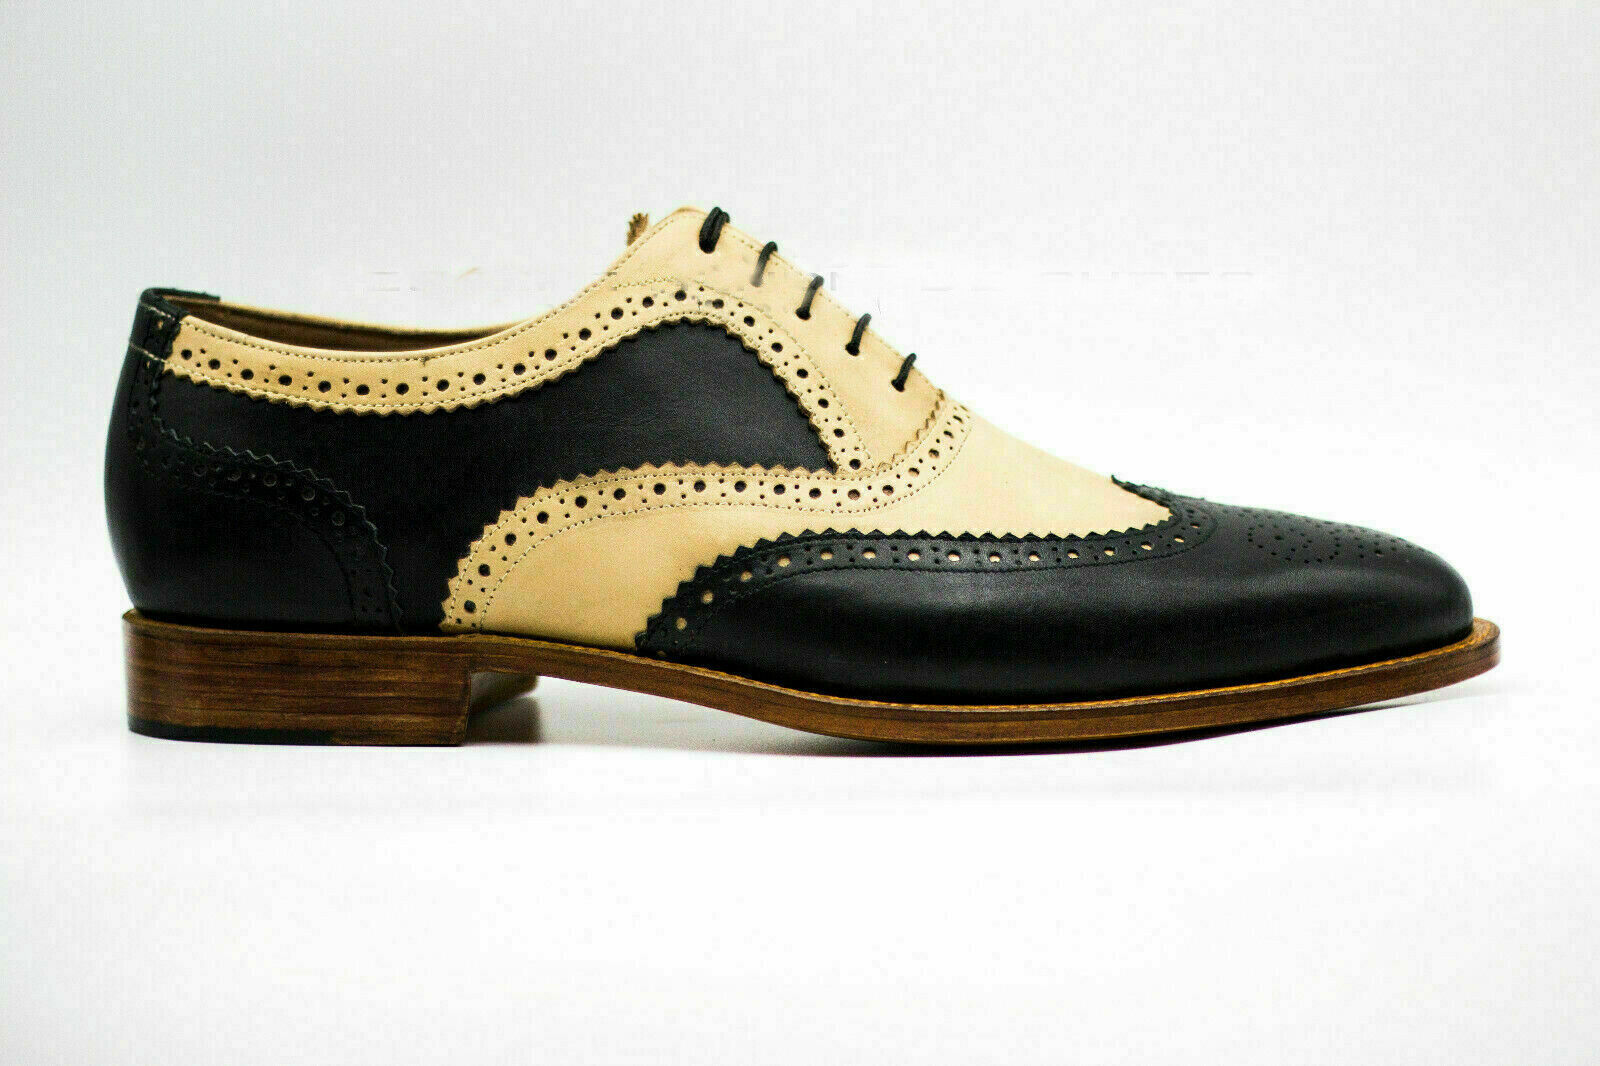 Mens Handmade shoes Leather Two-Tone Oxford Brogue Formal Wingtip LaceUp Boots